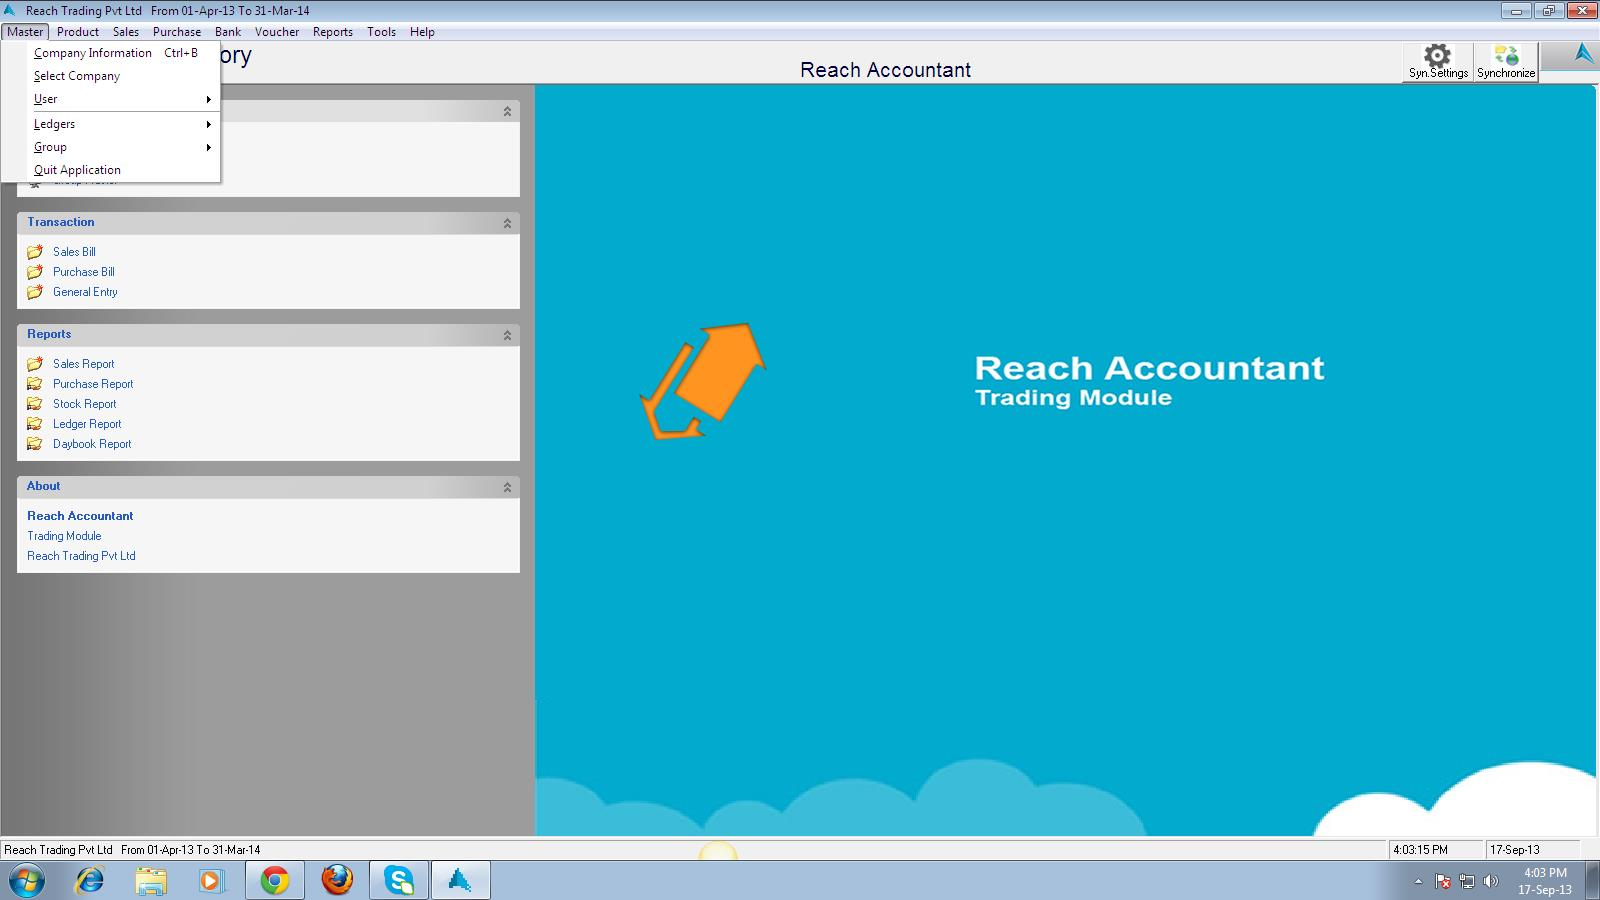 REACH TRADING SOFTWARE USER MANUAL First go to www.reachaccountant.com and download desktop software found at the left hand side bottom under Industrial Verticals (B2C) and follow the steps.